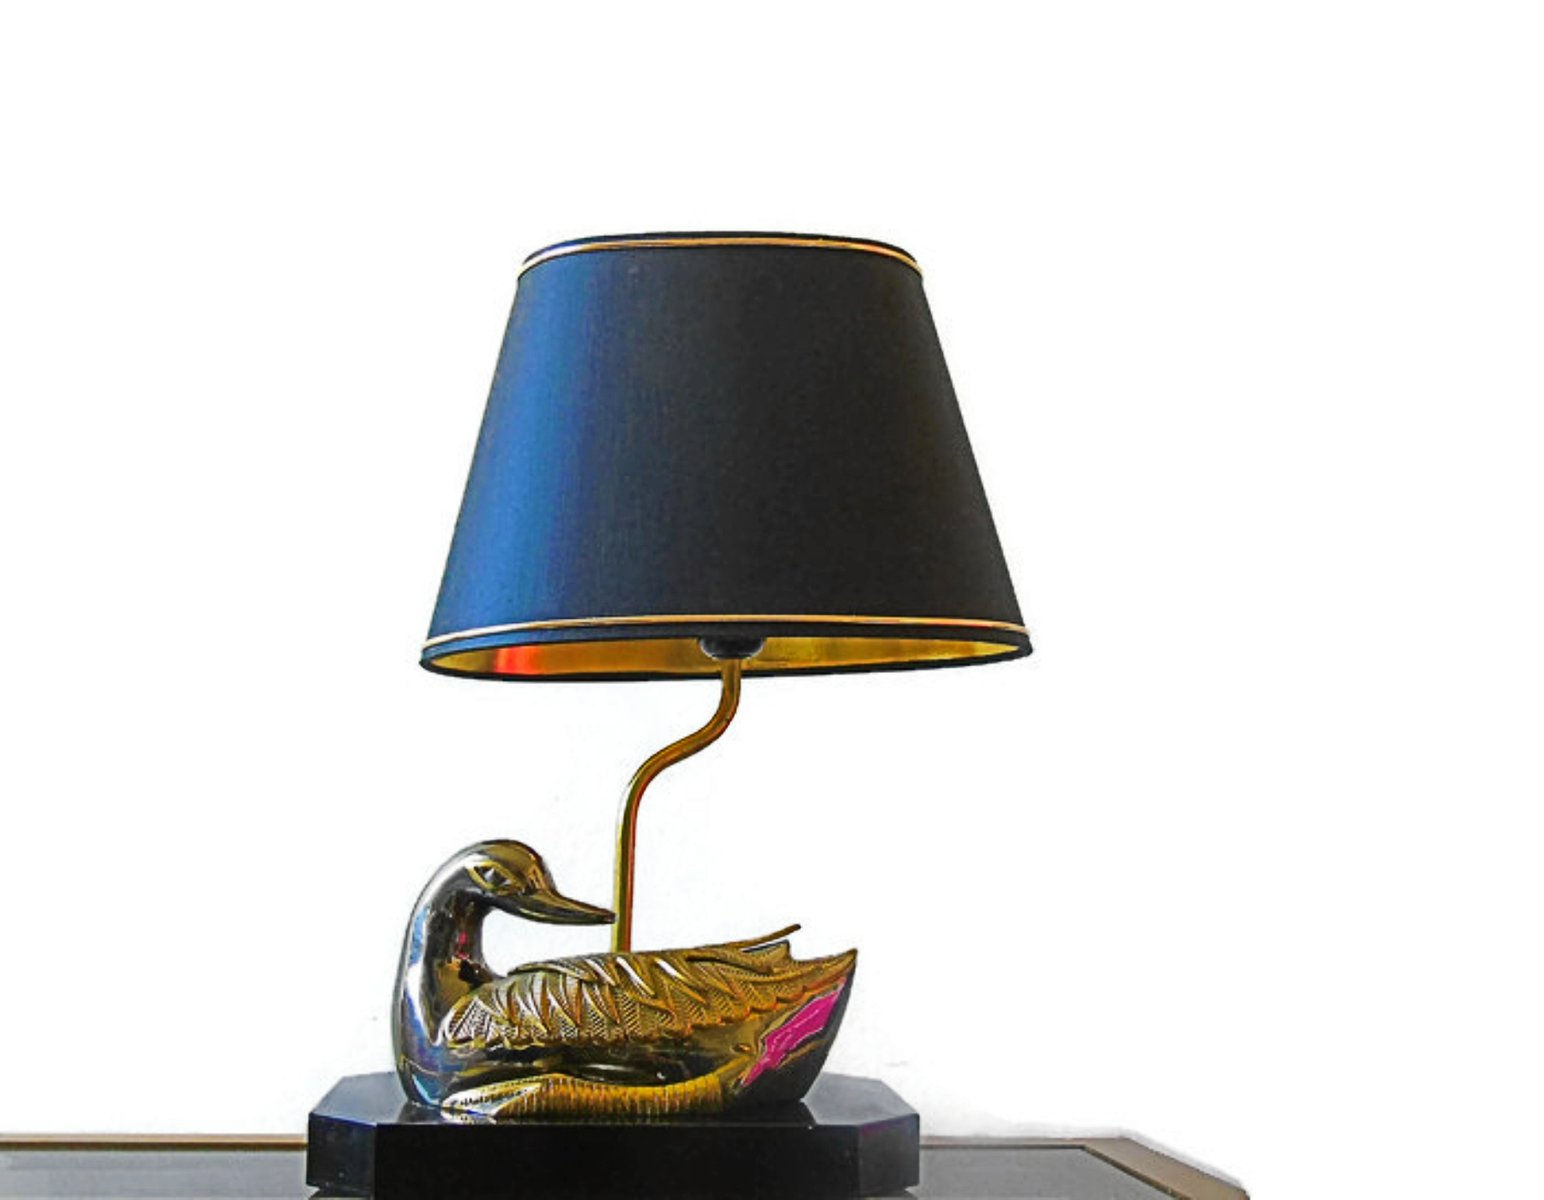 lampe de bureau canard vintage en laiton 1970s en vente sur pamono. Black Bedroom Furniture Sets. Home Design Ideas